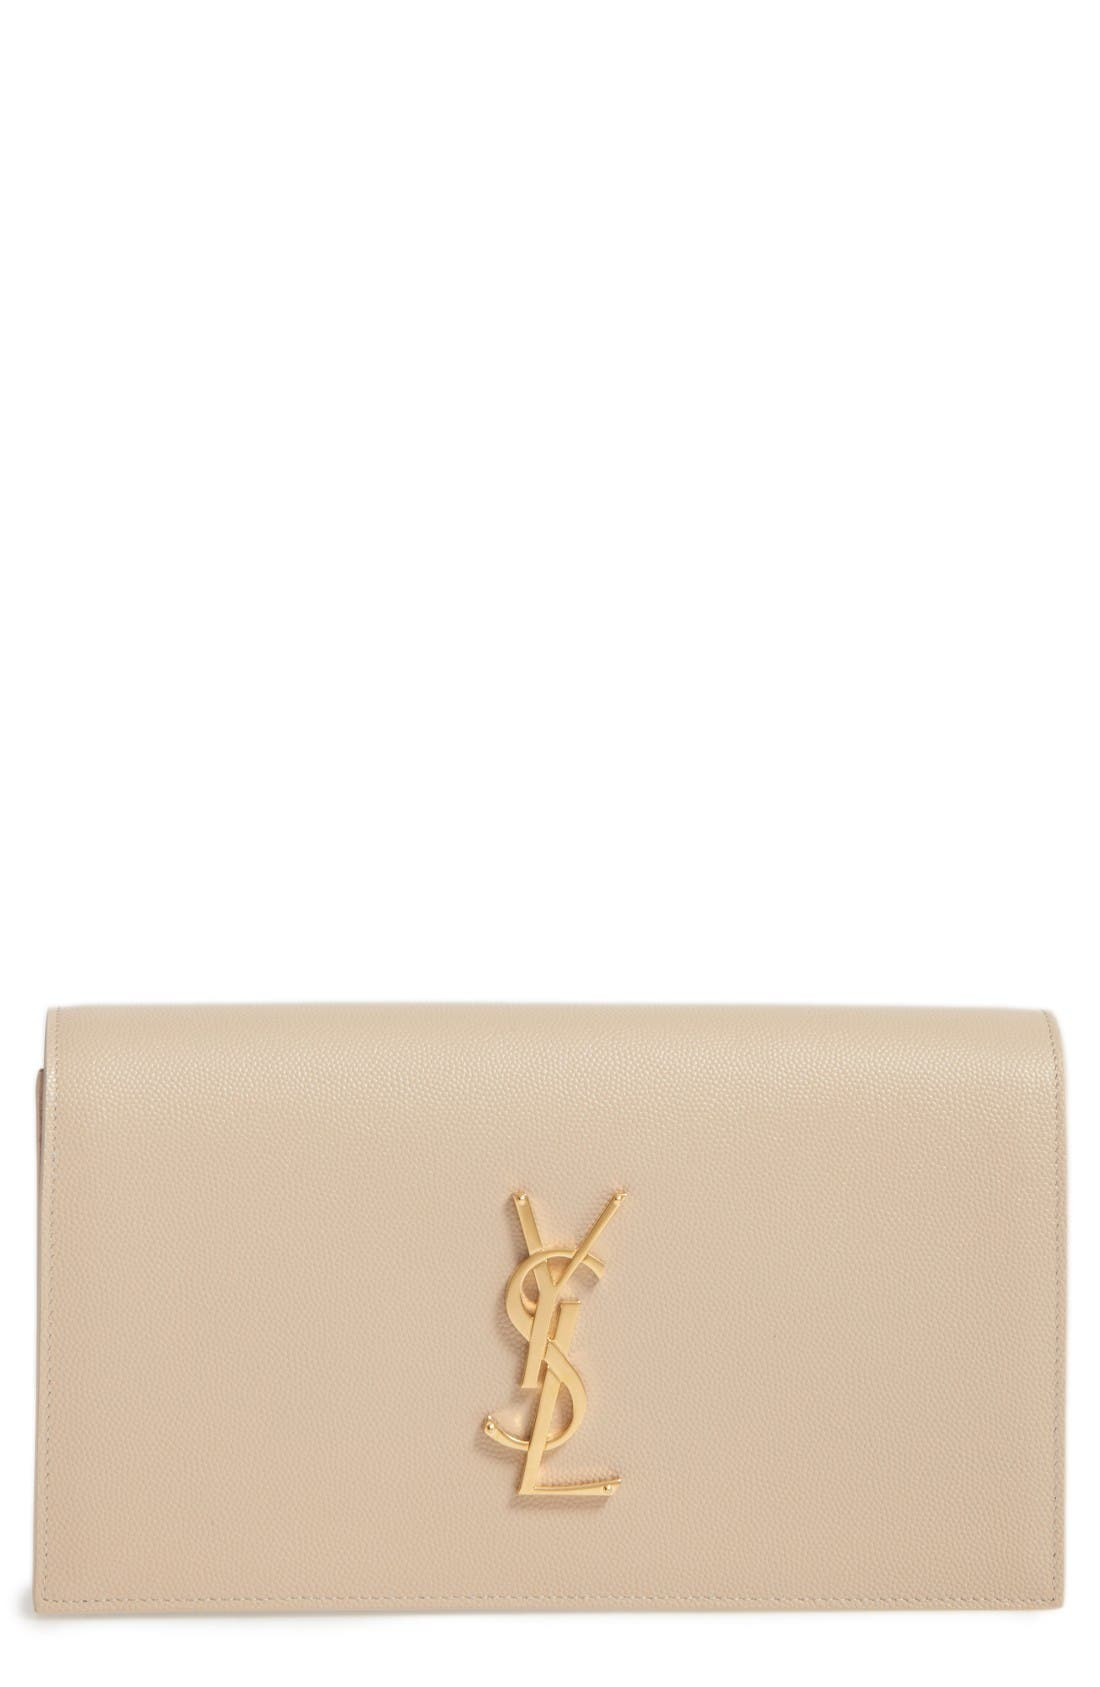 Saint Laurent 'Monogram' Leather Clutch